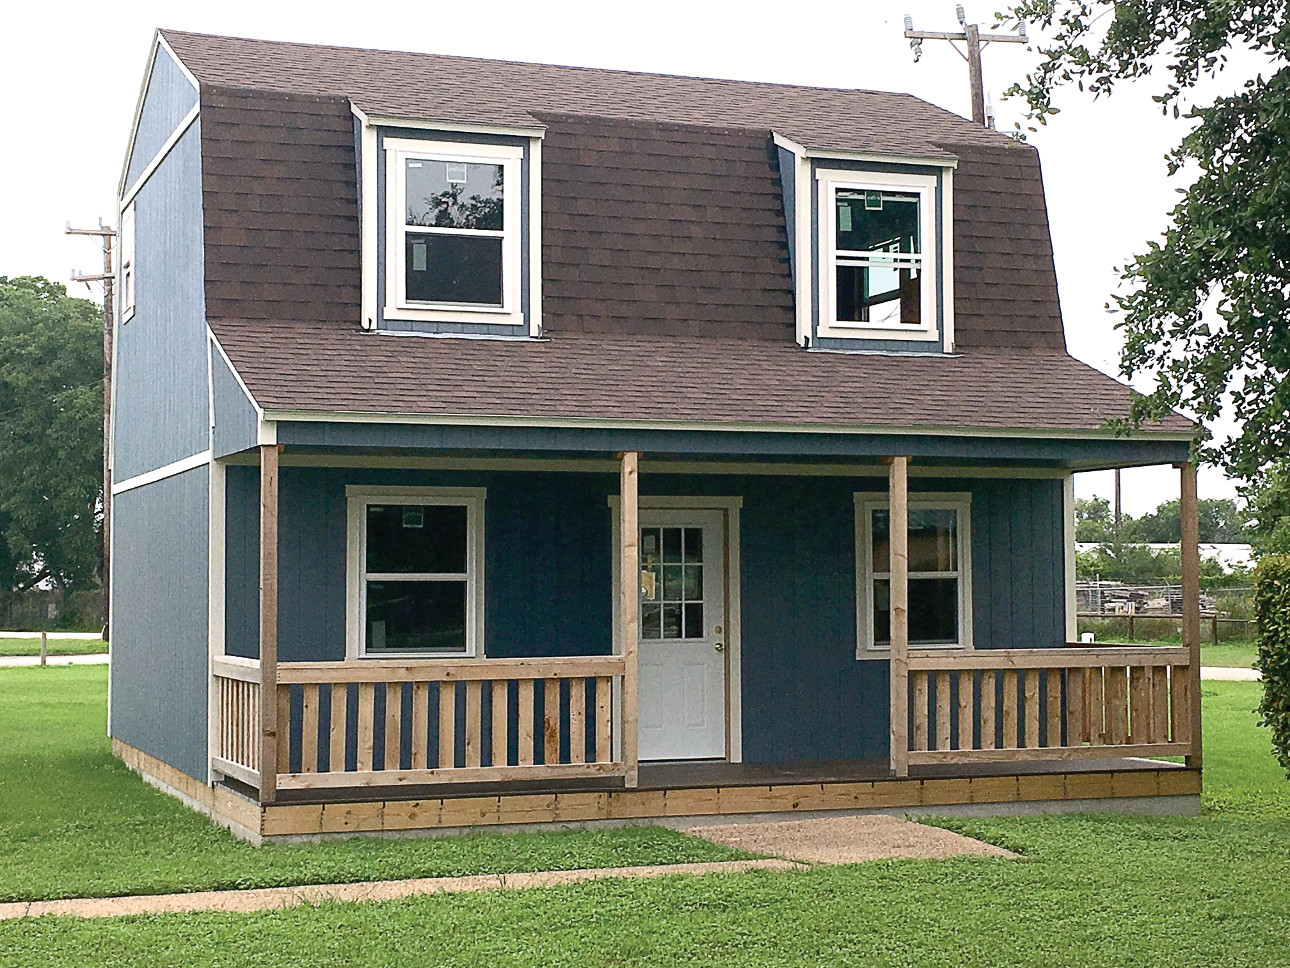 Sheds Tiny Homes Permits Airbnb